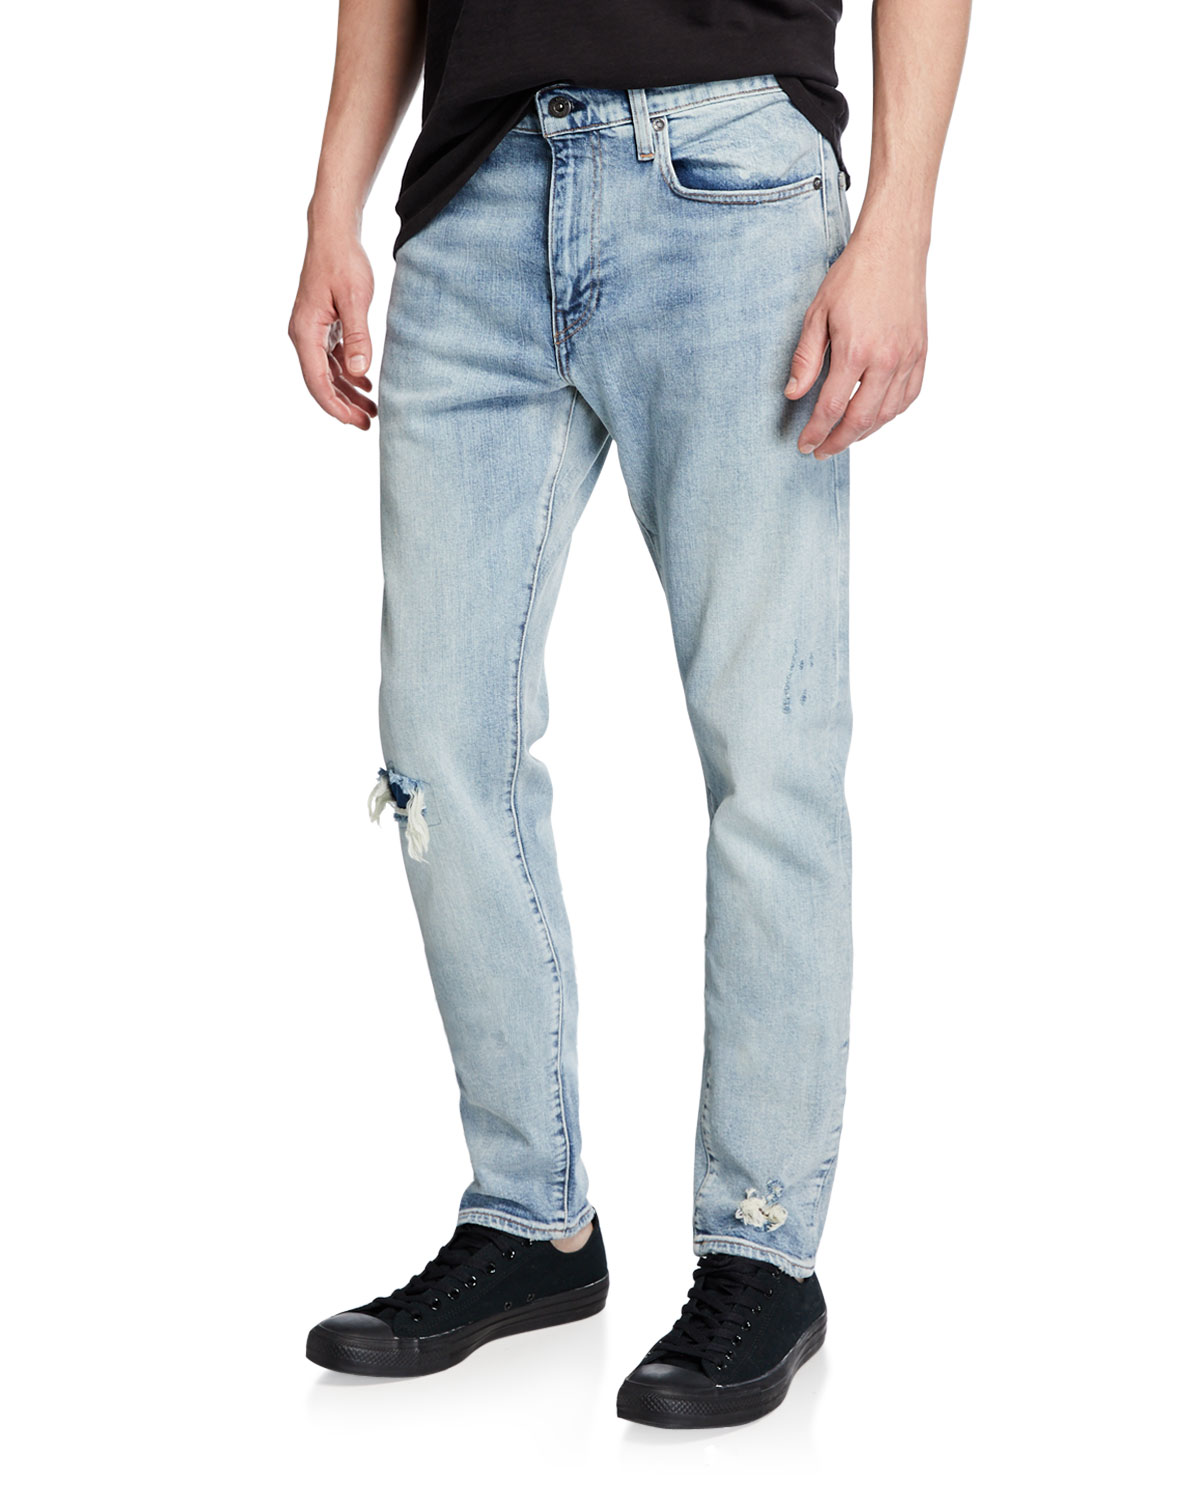 12a95fa65 Men's 512™ Slim Tapered Knee-Rip Jeans